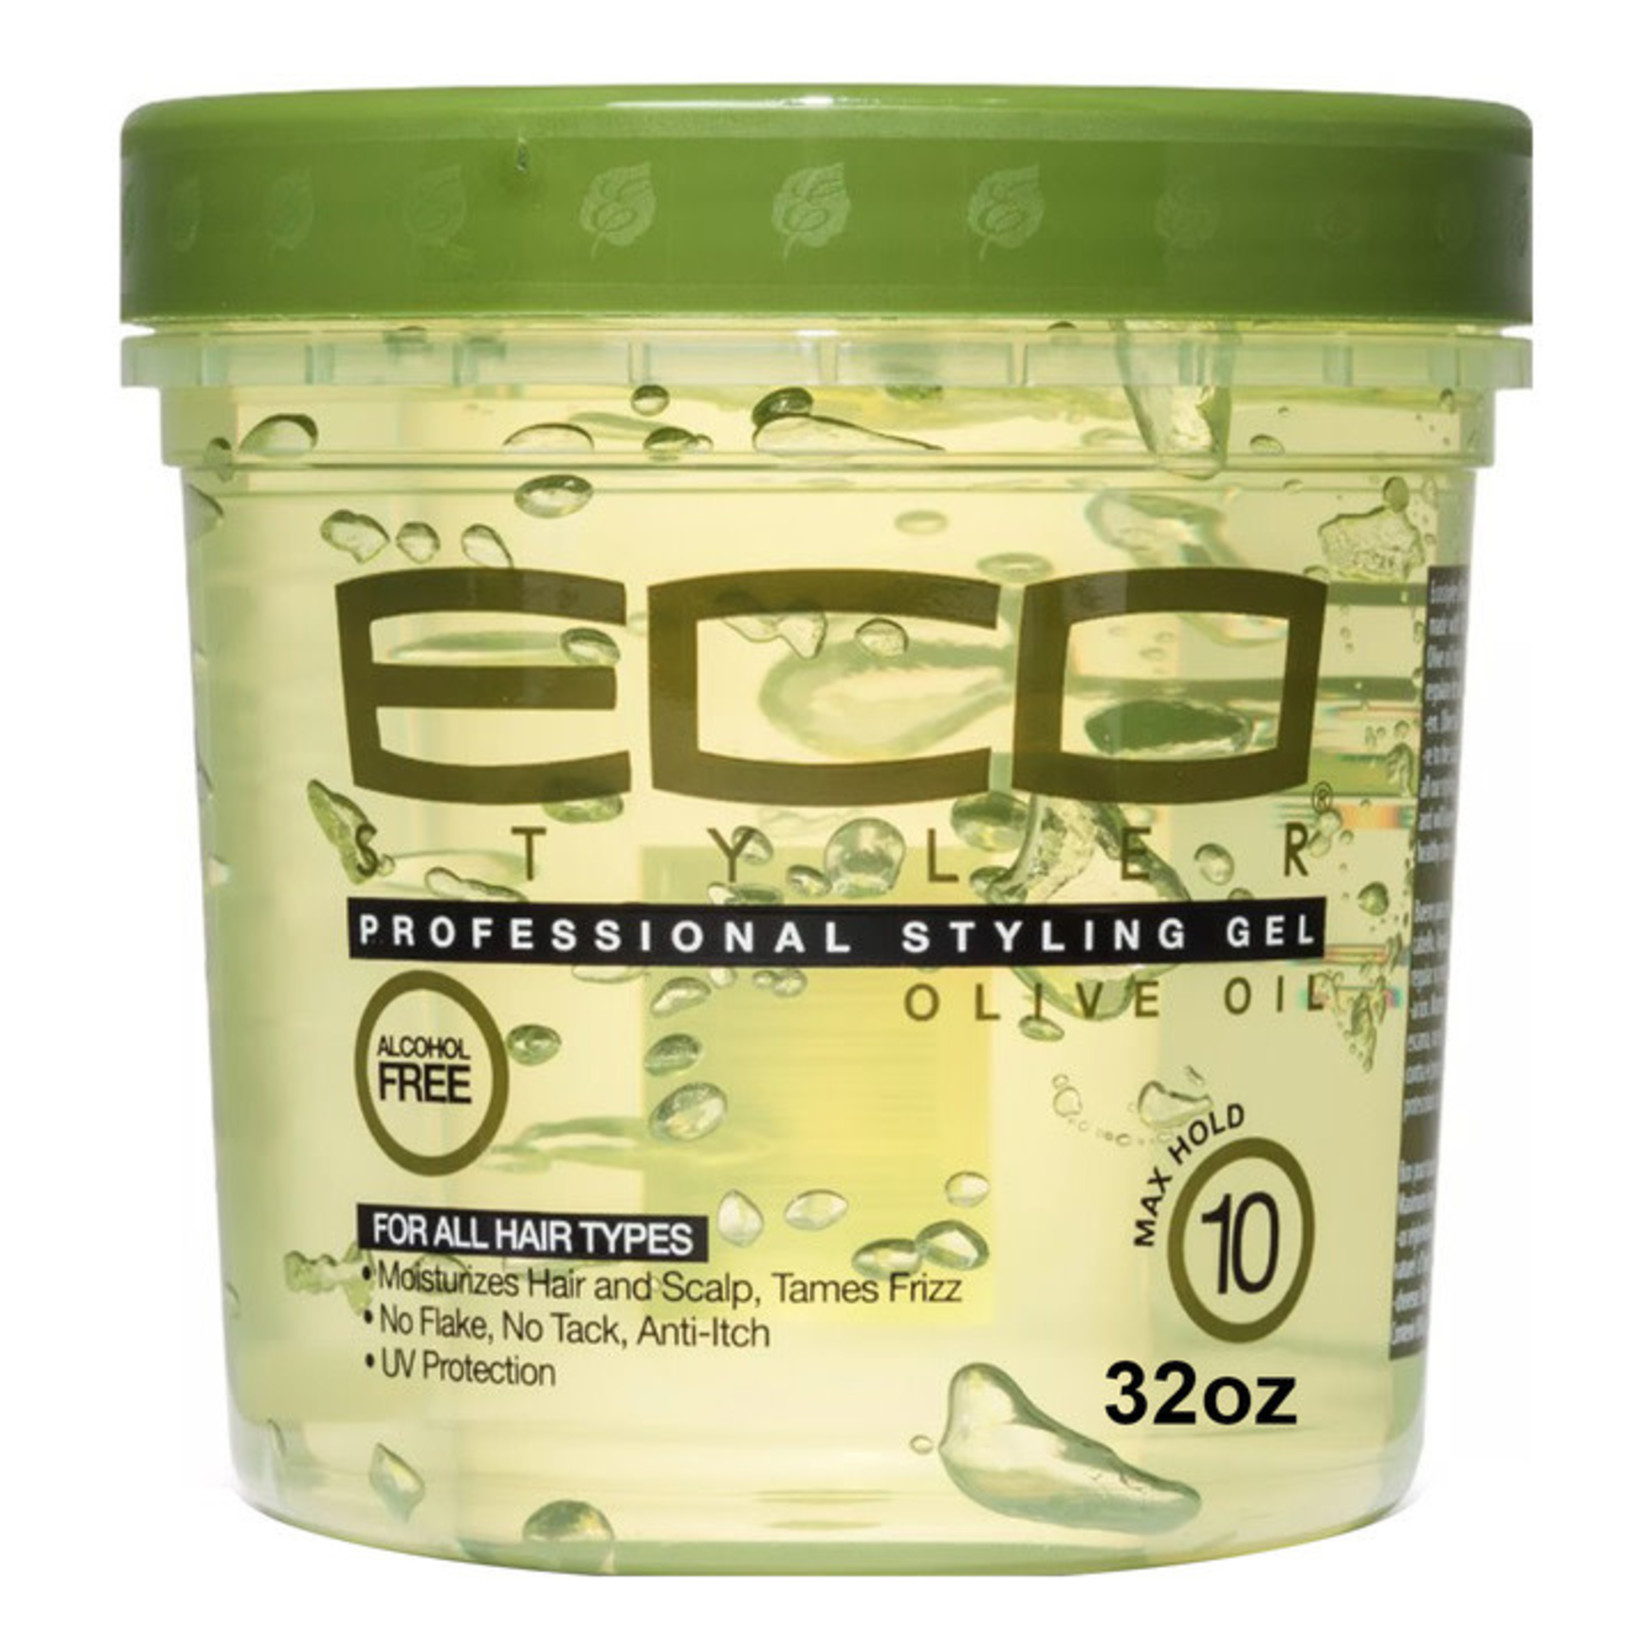 ECO STYLE ECO STYLING GEL - OLIVE OIL [32 OZ]